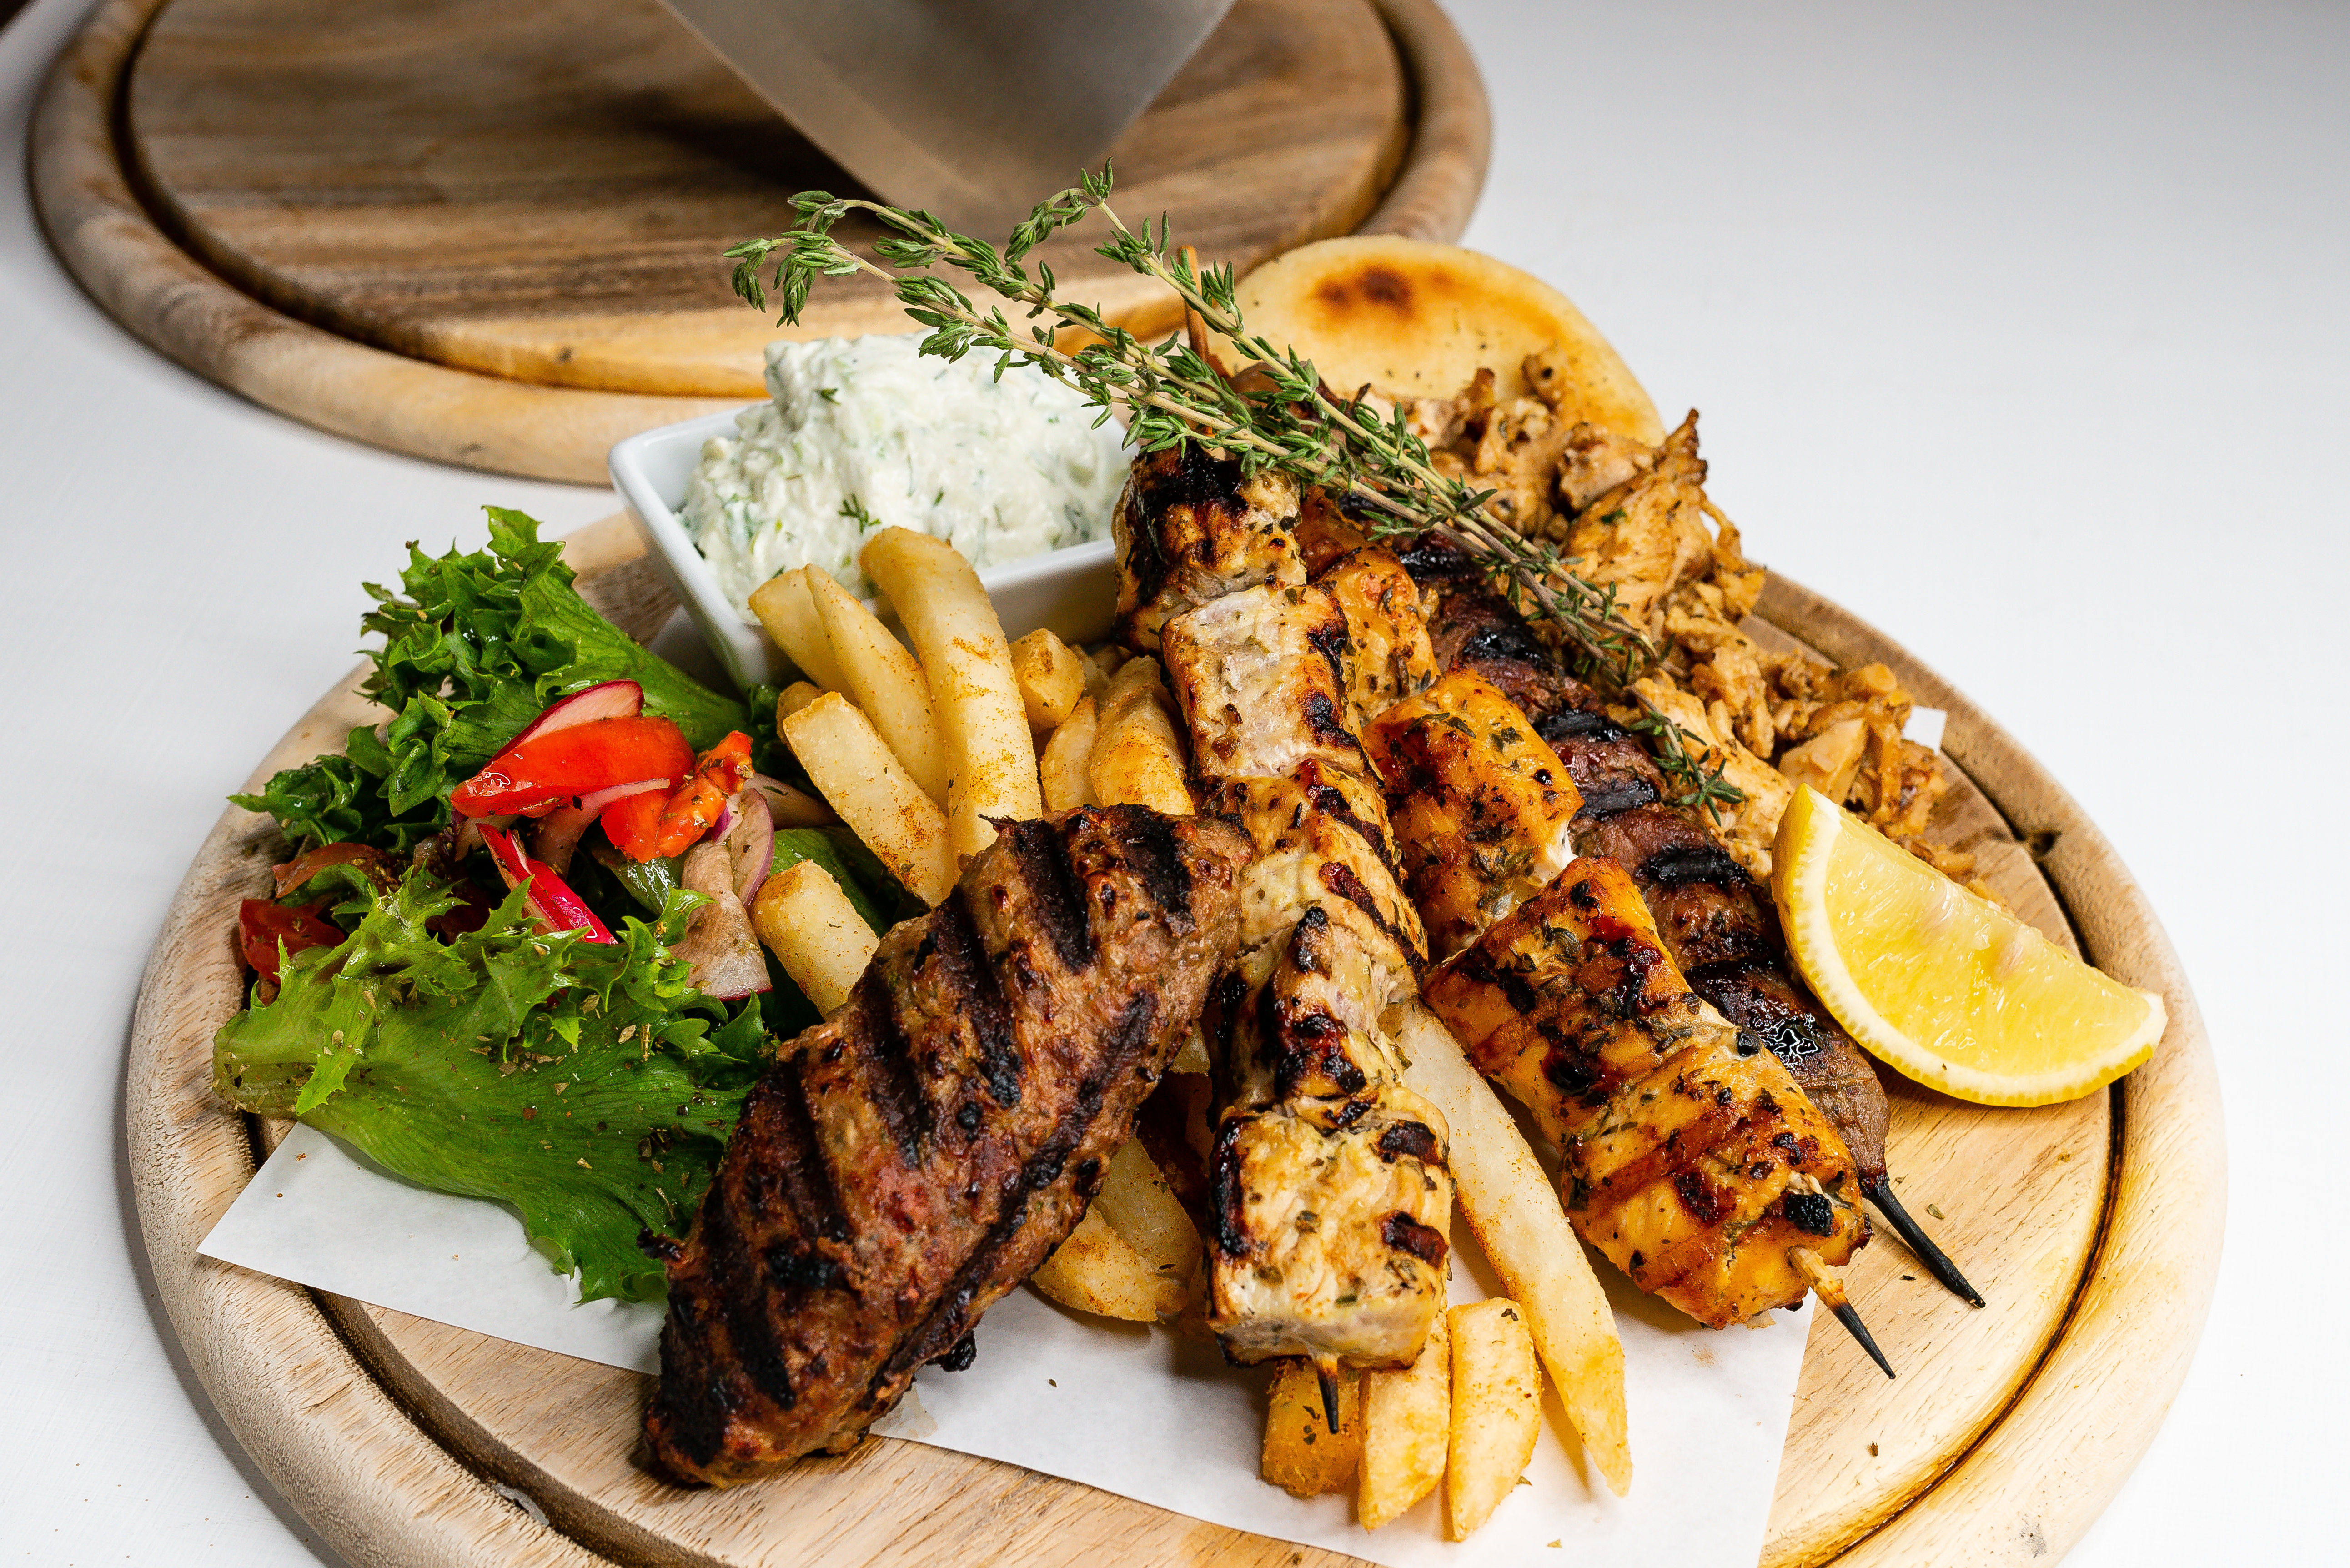 38. Mixed grill